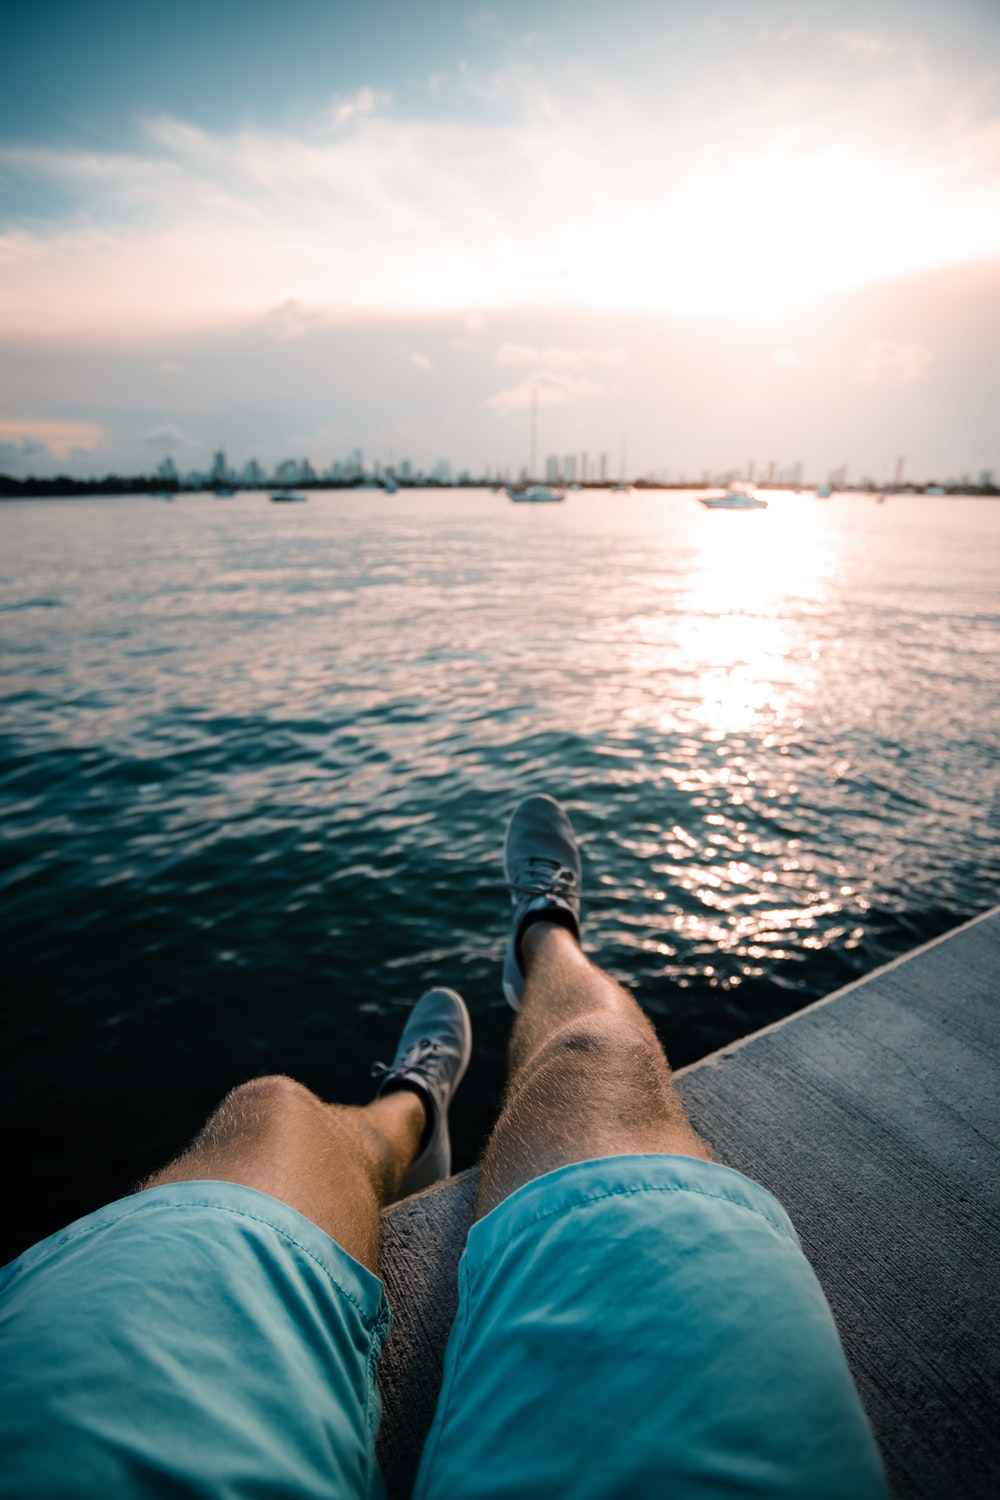 person in blue denim shorts and black shoes sitting on dock over the sea during daytime